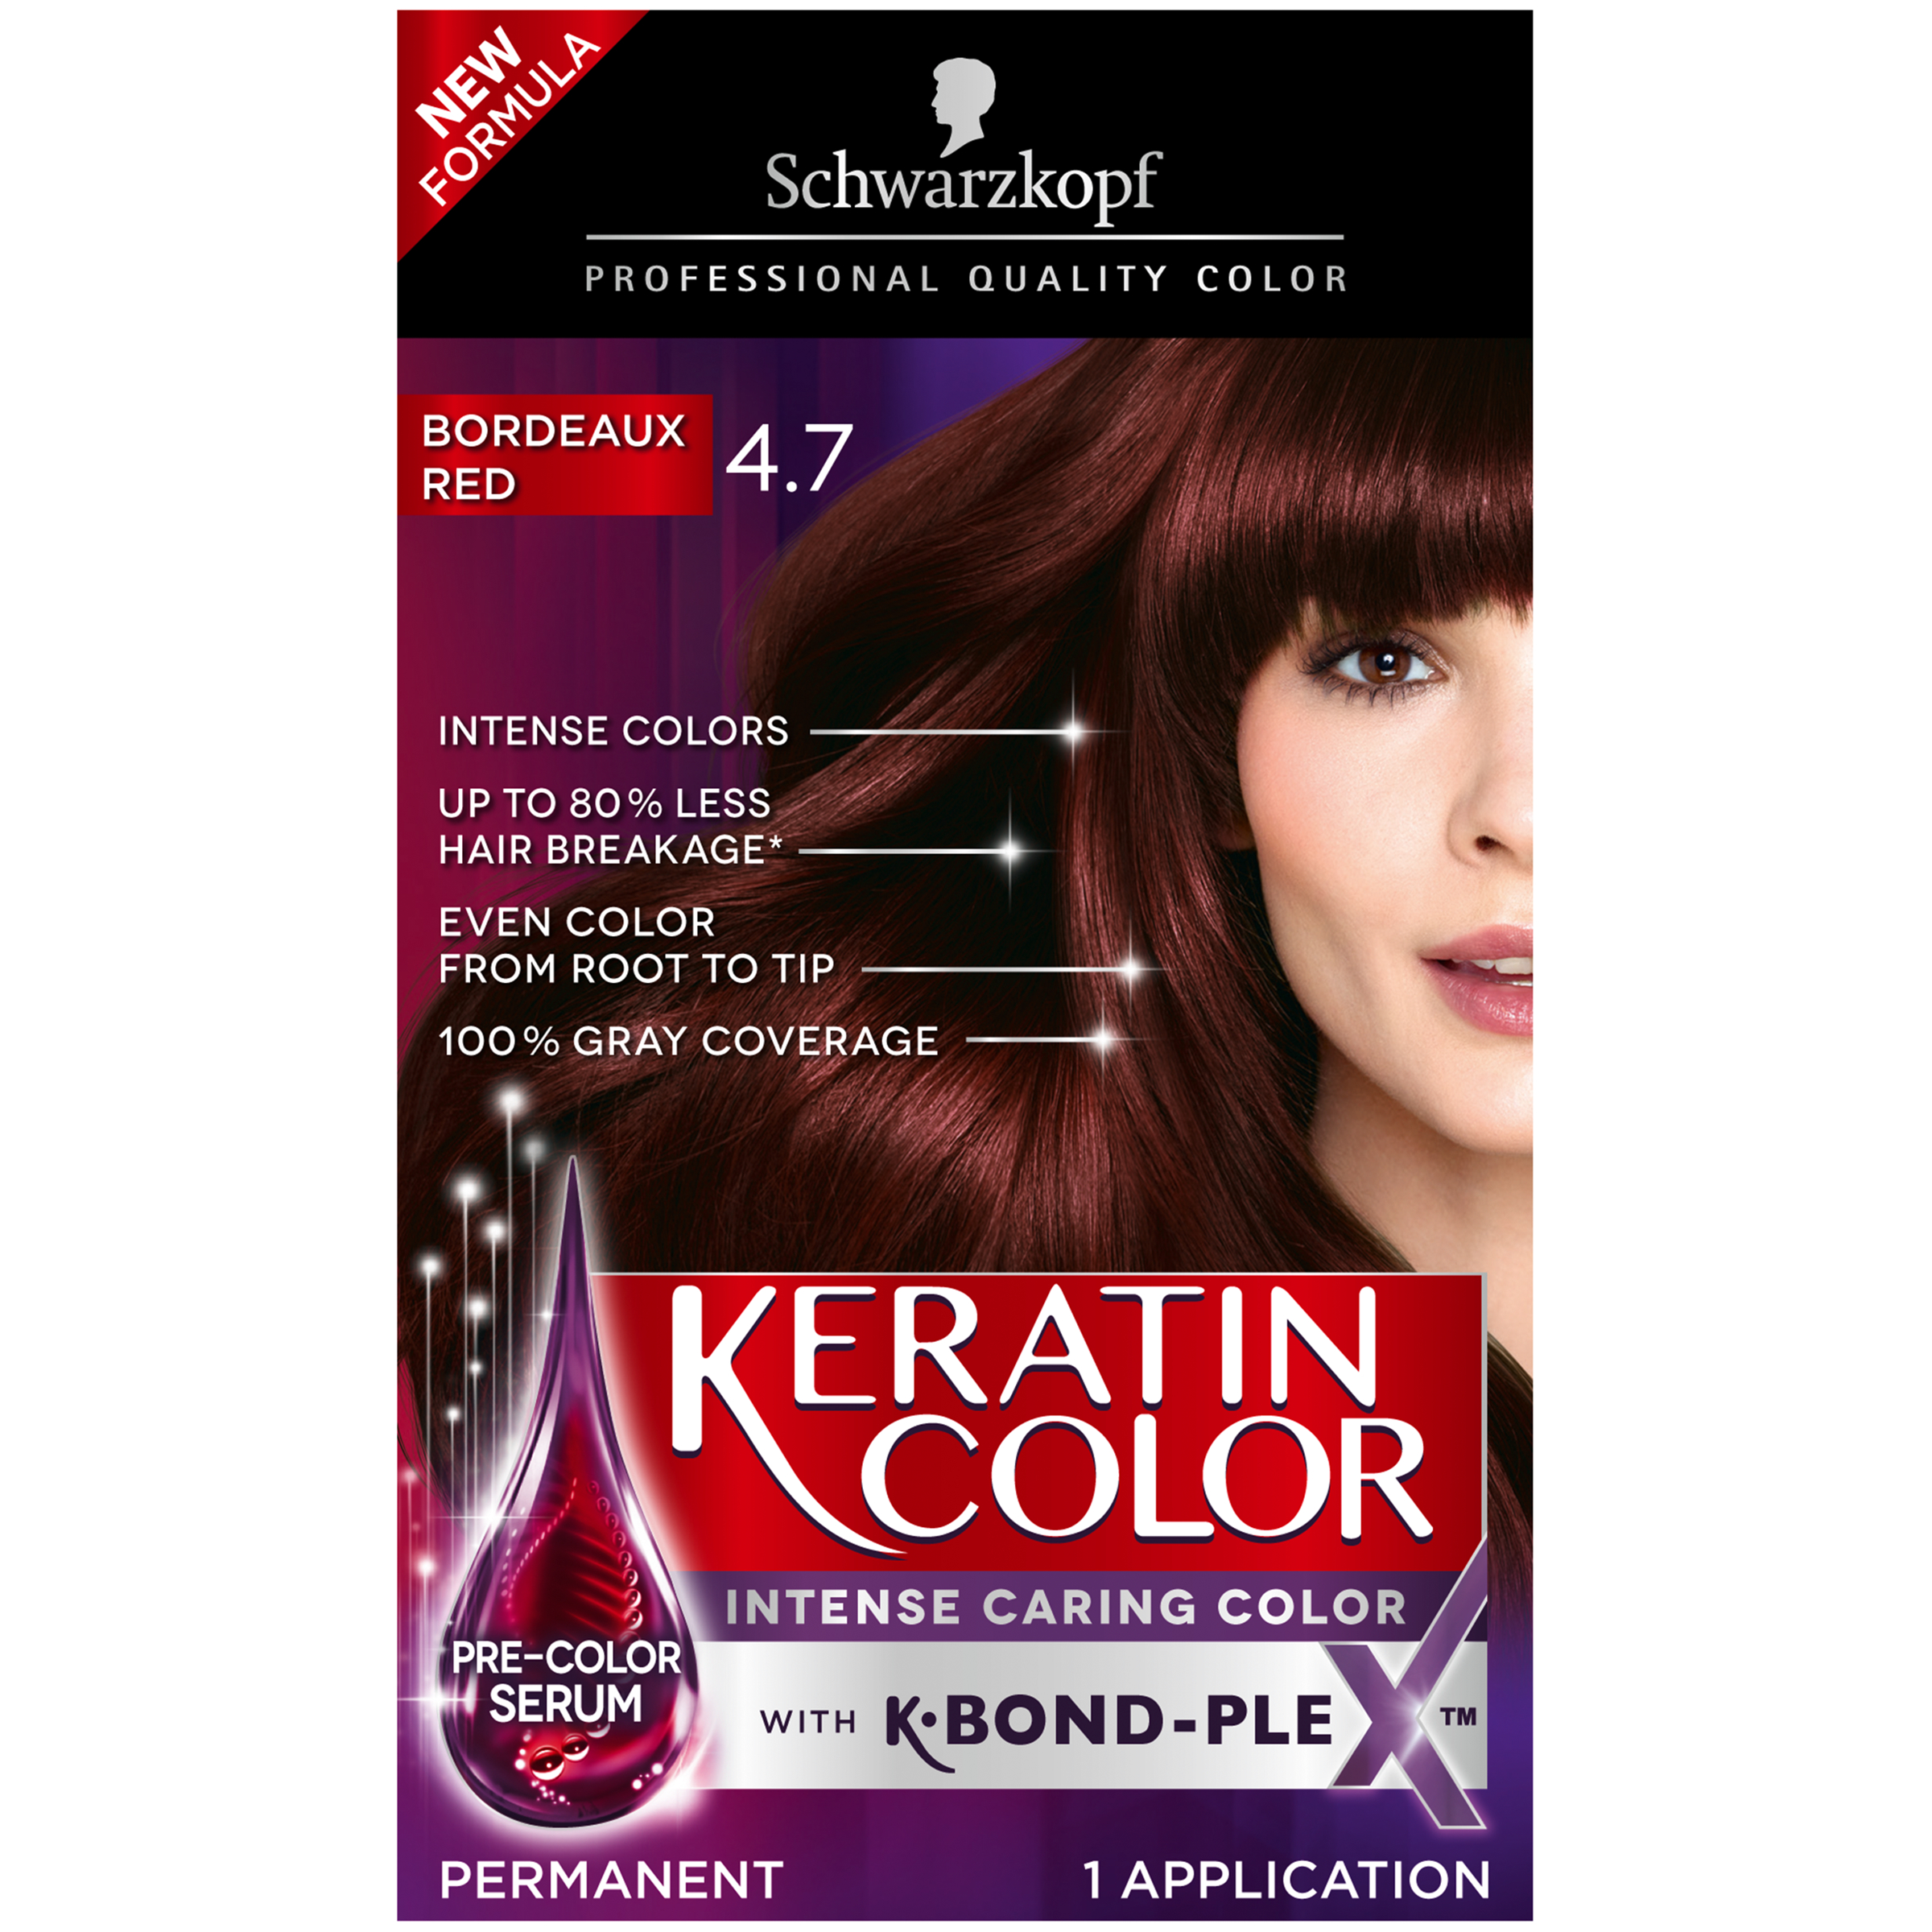 Schwarzkopf Keratin Color Anti-Age Hair Color Kit, 7.0 Secret Blonde